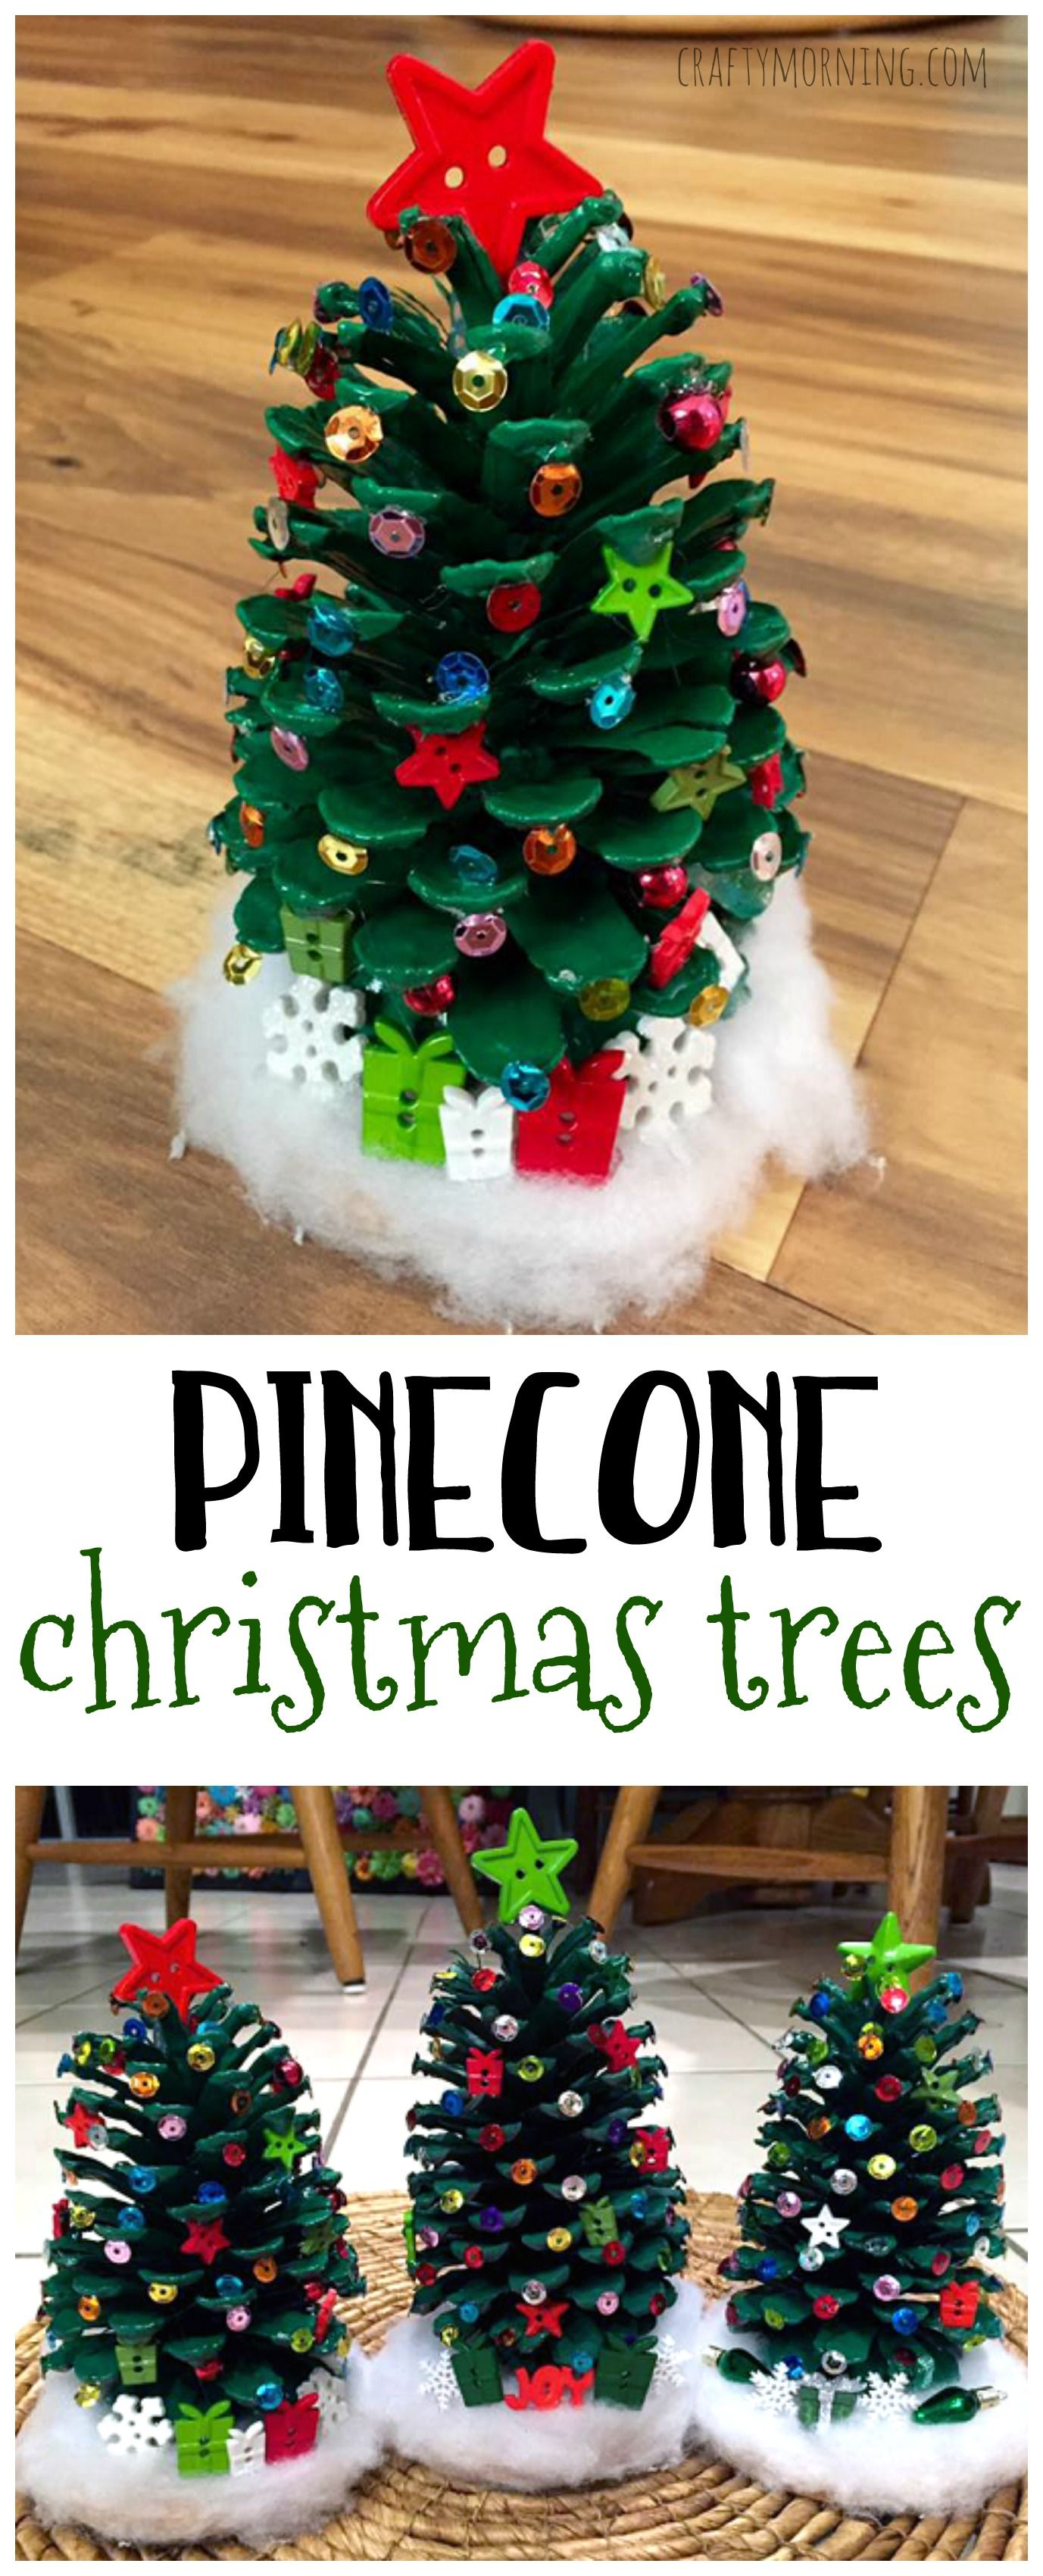 Decorate Pinecone Christmas Trees Crafty Morning Christmas Crafts Christmas Crafts For Kids Preschool Christmas